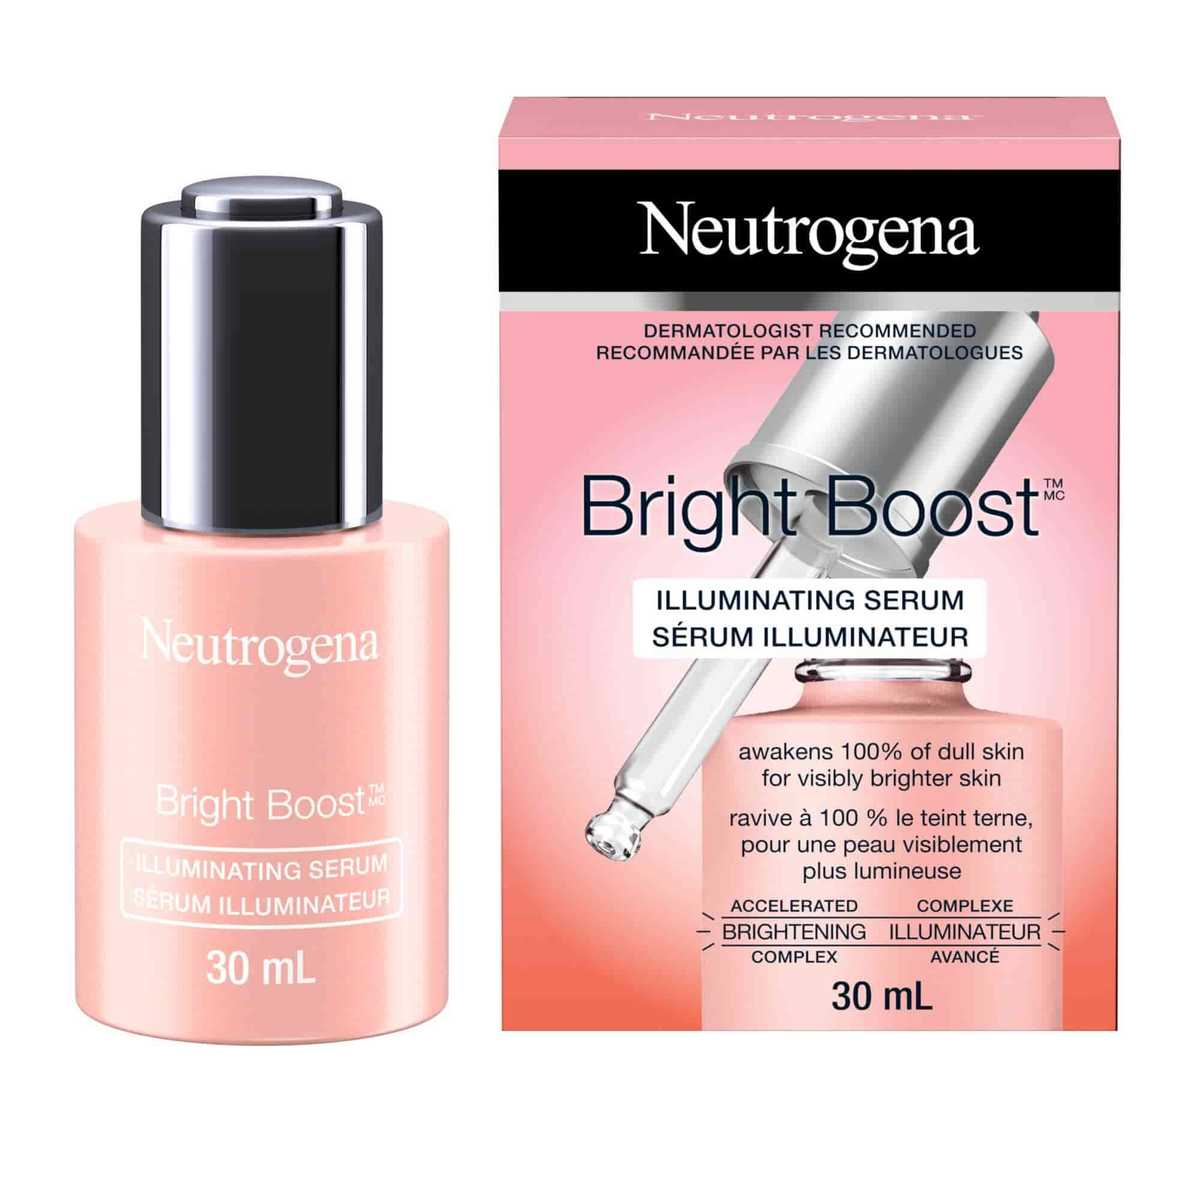 Neutrogena Bright Boost Illuminating Serum